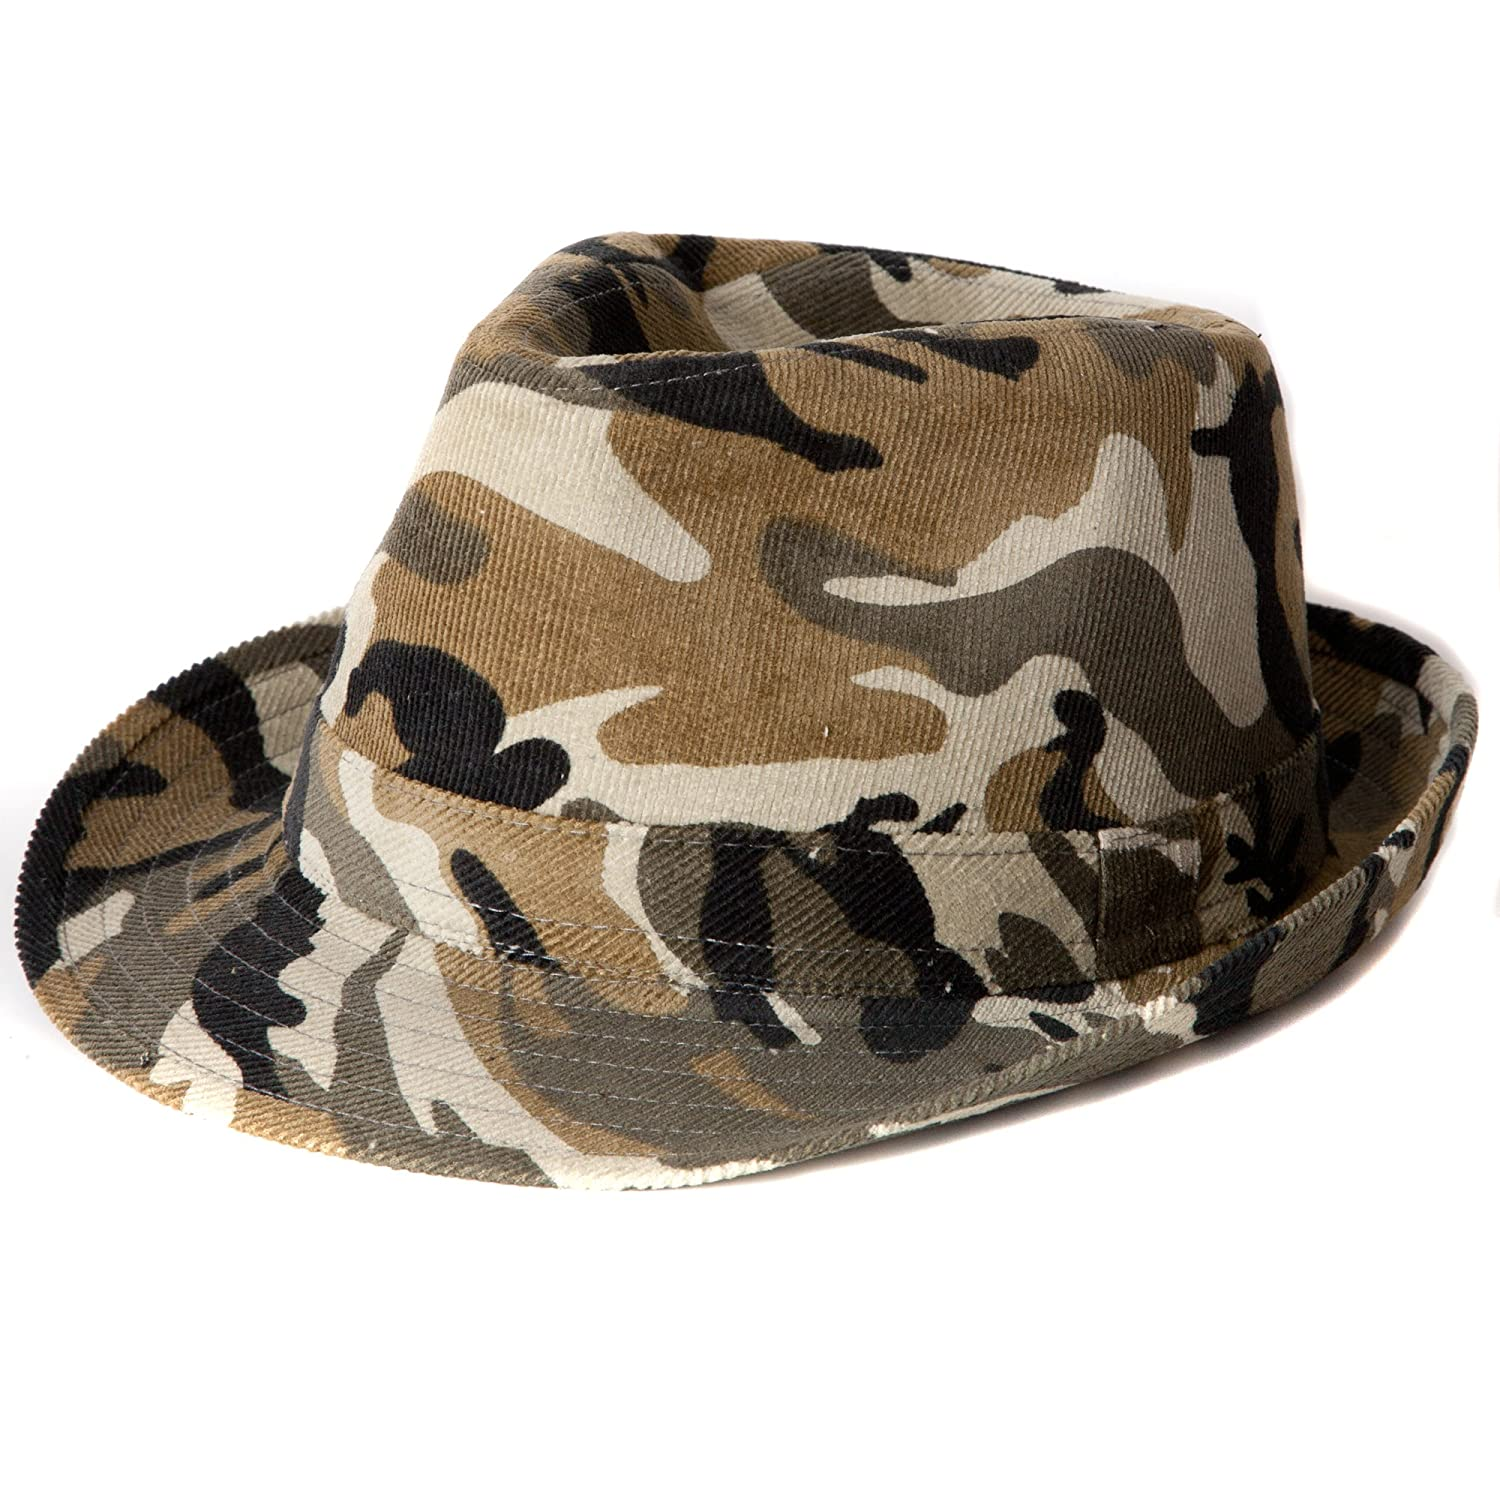 Accessoryo Unisex 58cm Military Khaki Camo Corded Design Trilby Hat